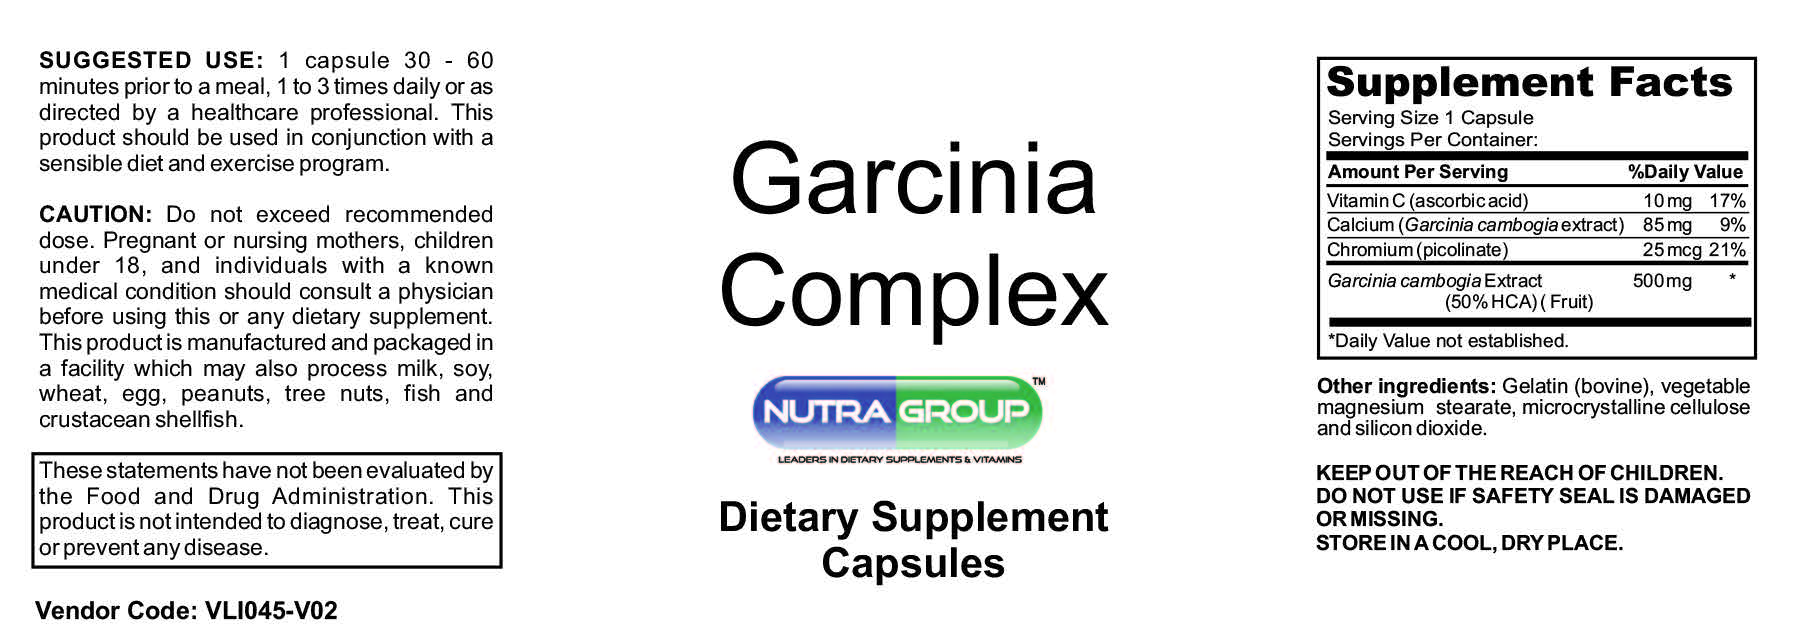 private label garcinia cambogia complex